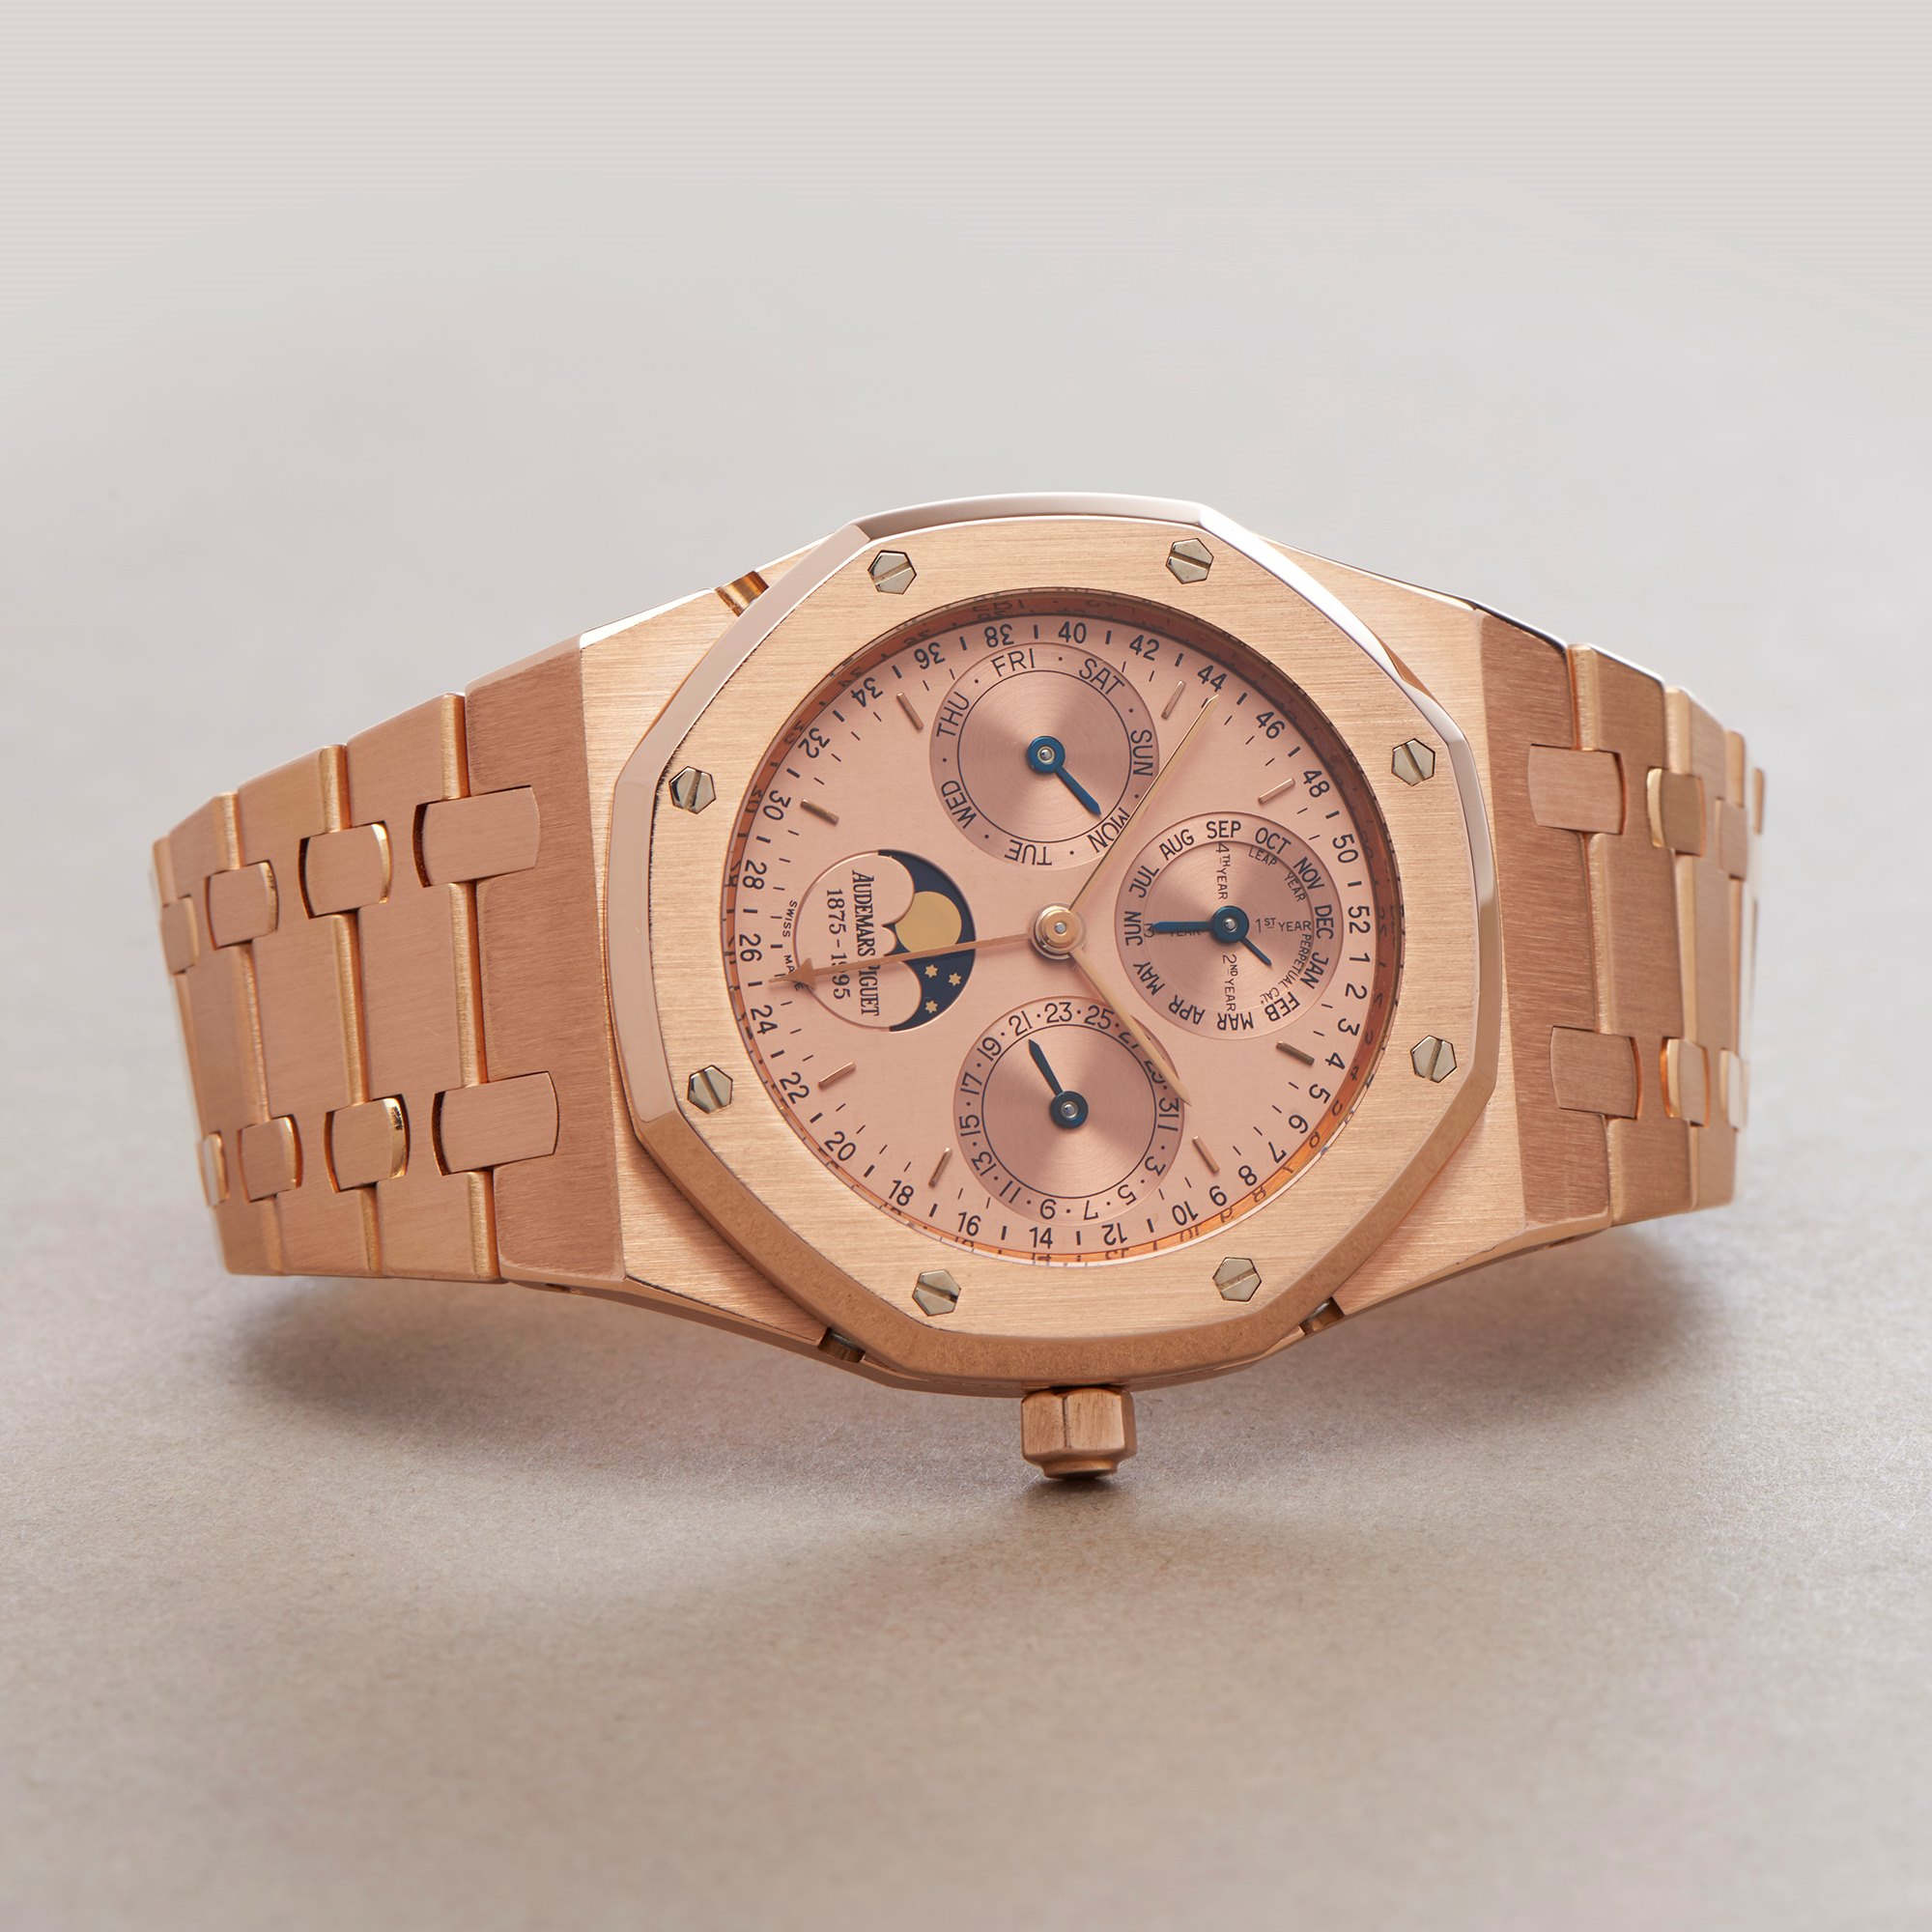 Audemars Piguet Royal Oak Quantieme Perpetual Limited Edition Of 120 Pieces 18K Rose Gold - 25810OR.OO.0944OR.01 Rose Gold 25810OR.OO.0944OR.01